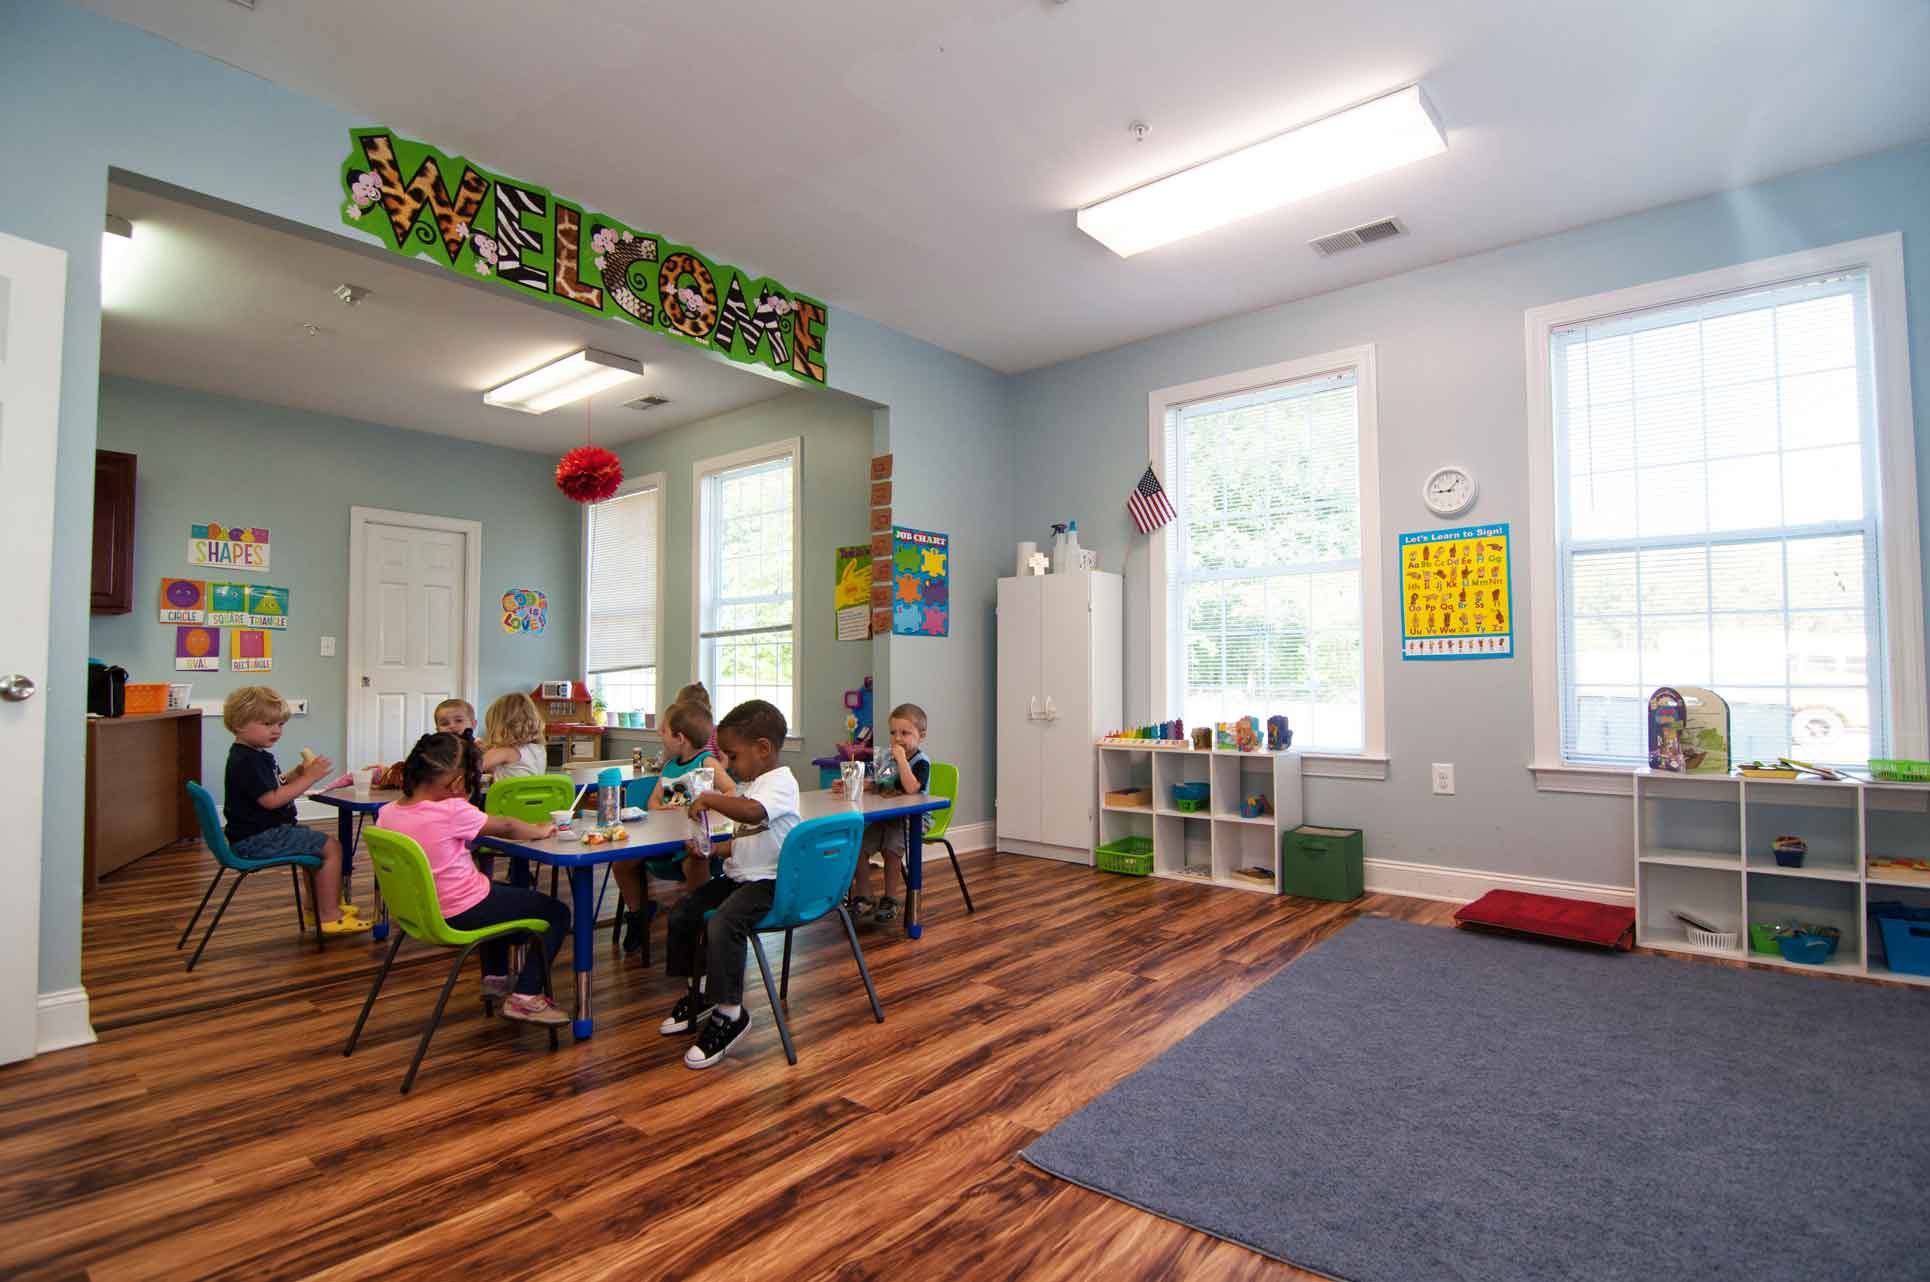 Large-Classroom-with-Students-Working-at-Faith-Christian-Academy-Private-Christian-School-between-Burlington-and-Greensboro-NC